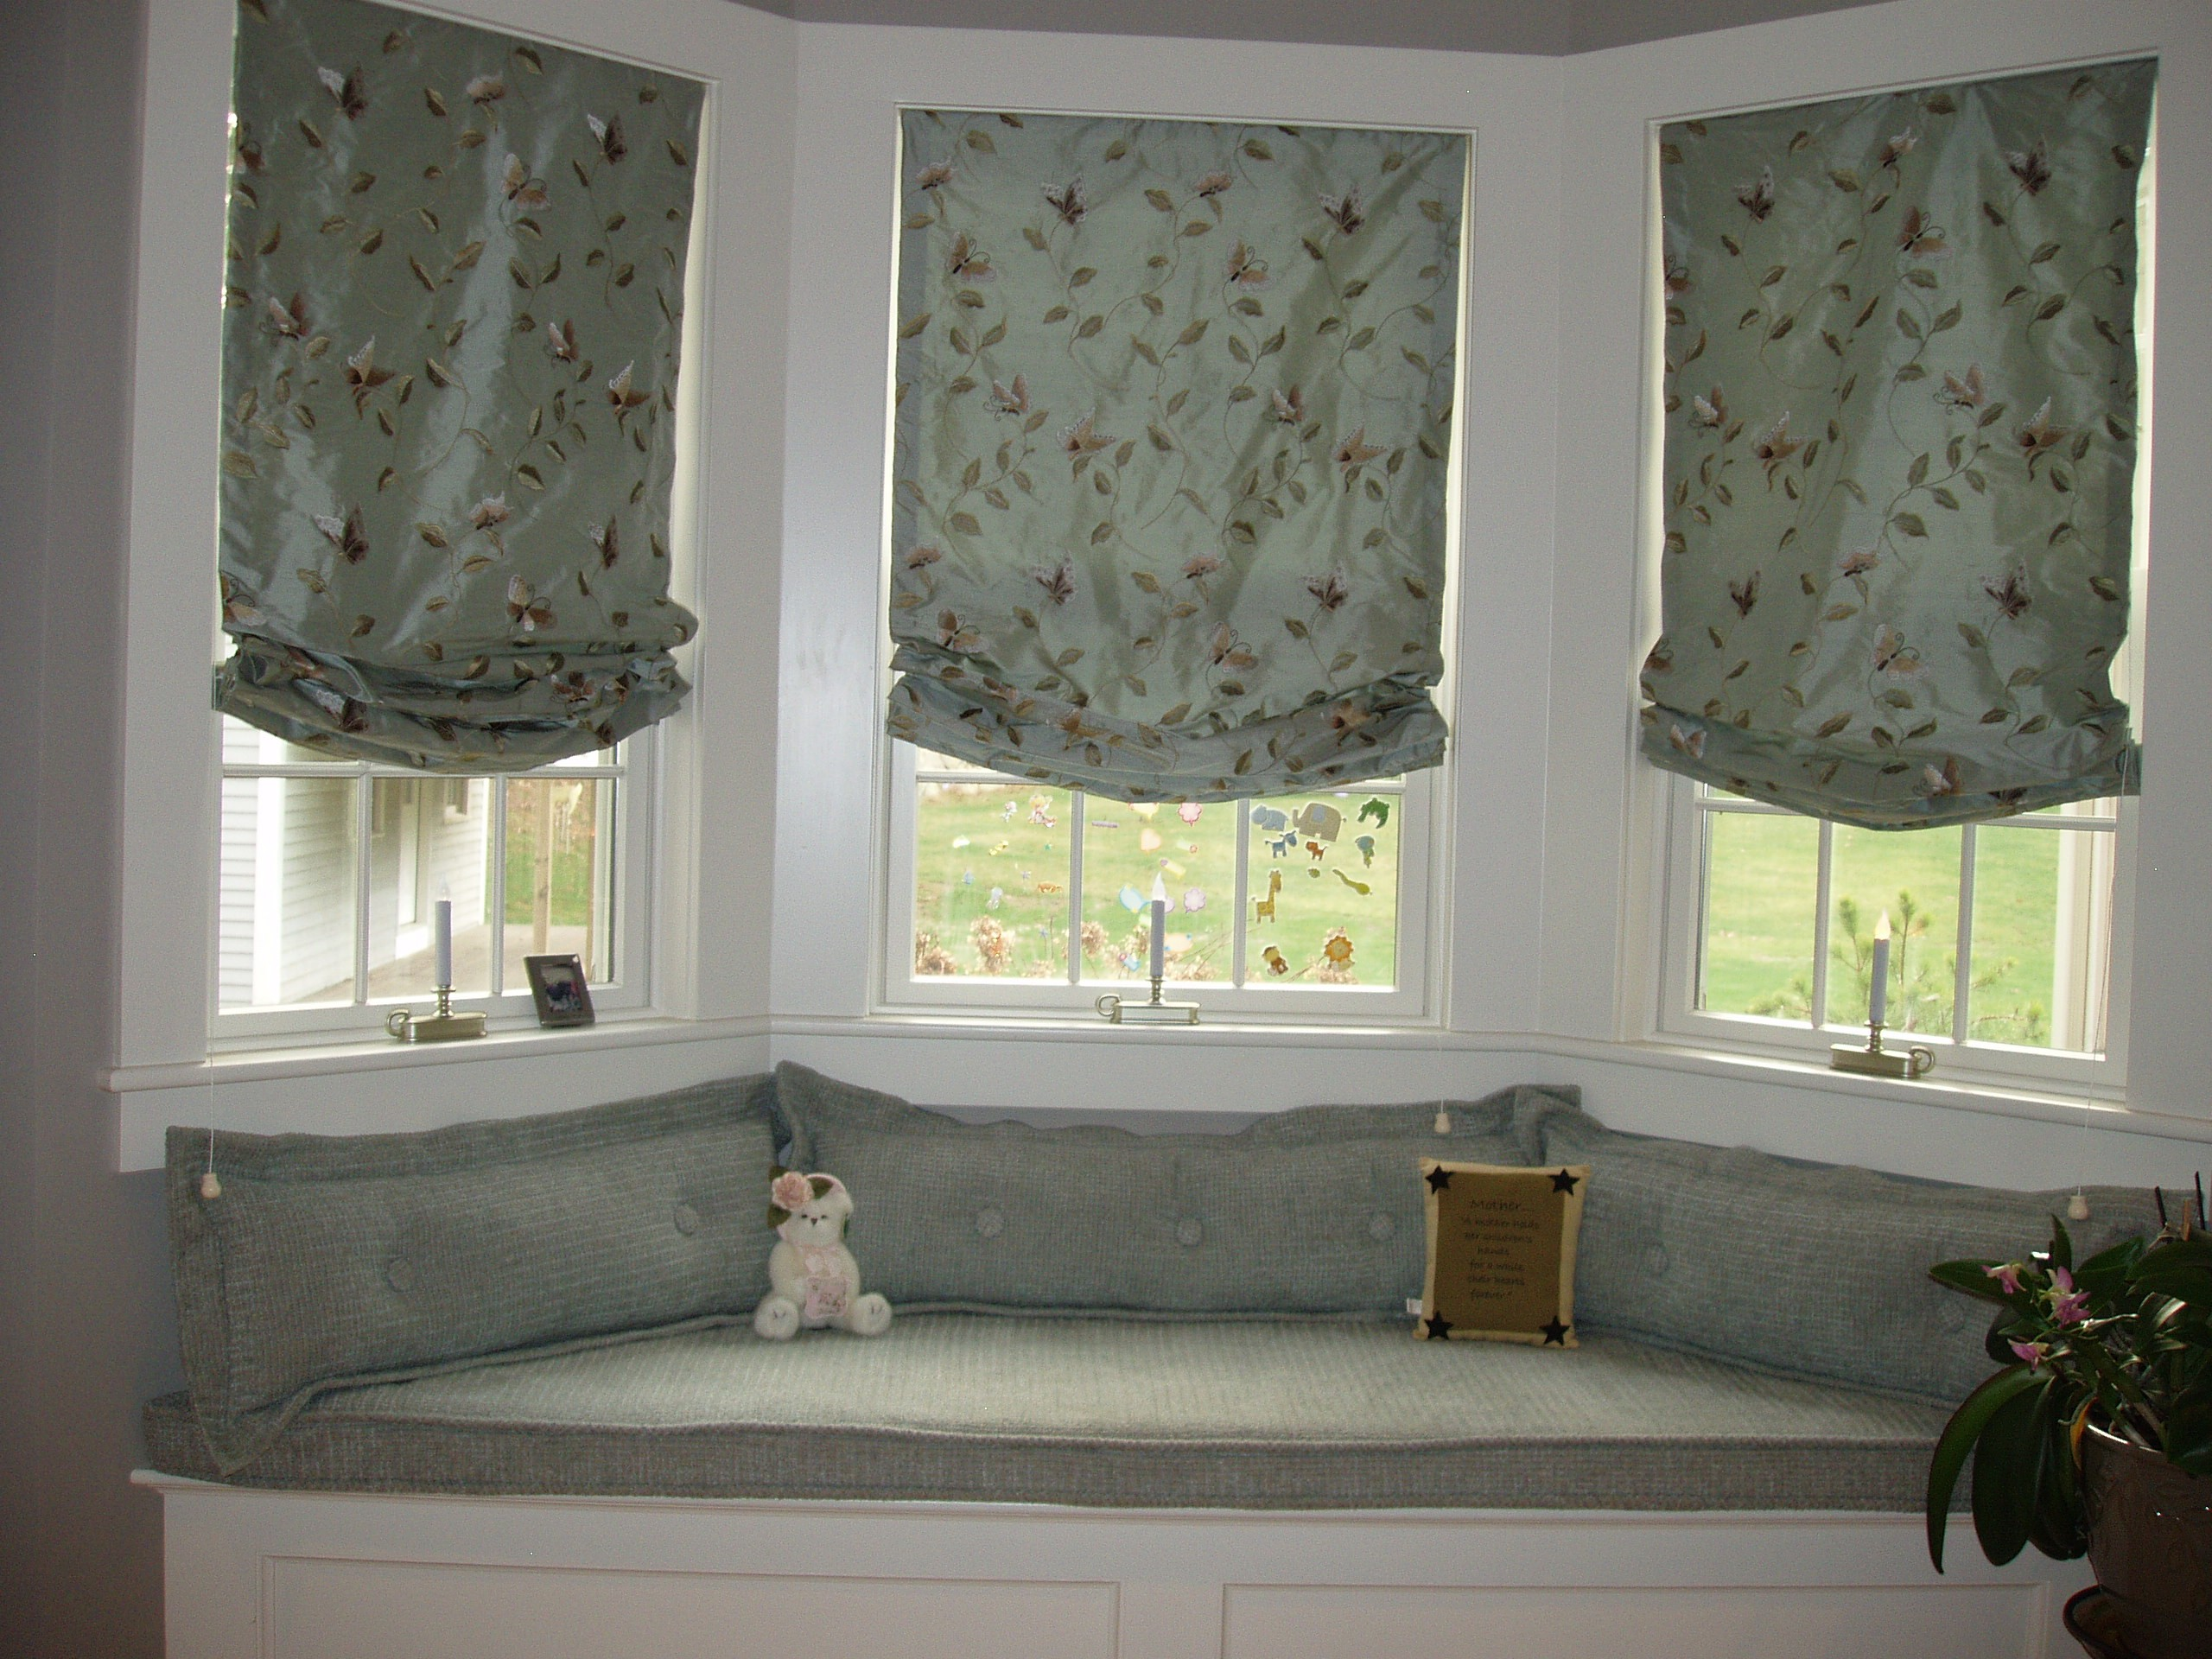 bedroom-interior-white-stained-wooden-frame-bay-window-for-master-bedroom-using-gray-floral-pattern-shade-combined-with-white-storage-bench-using-gray-cushion-pad-master-bedroom-window-treatments